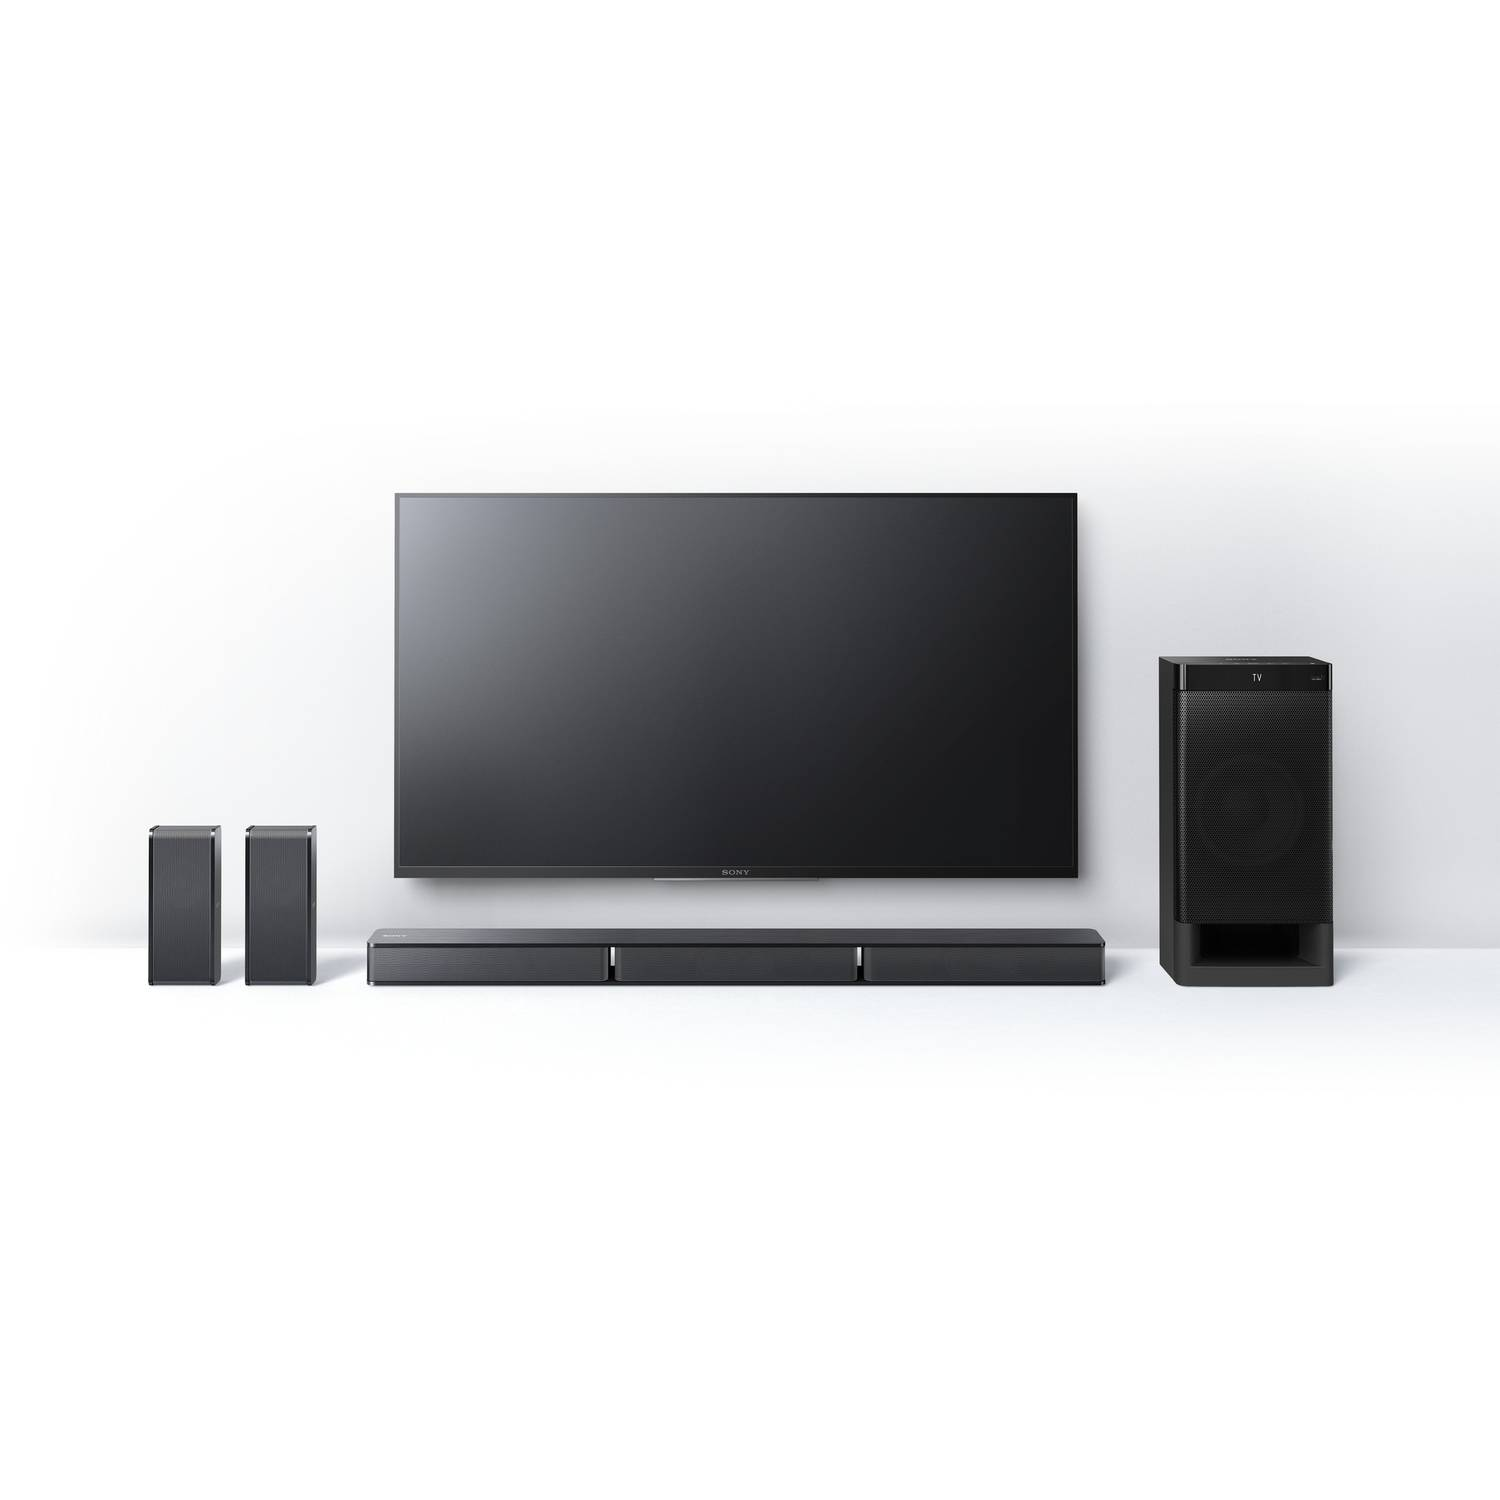 Refurbished Sony Htrt3 51 Channel Home Theater Sound Bar With Basic Diagram Of Speaker Setup For Surround Subwoofer And Bluetooth